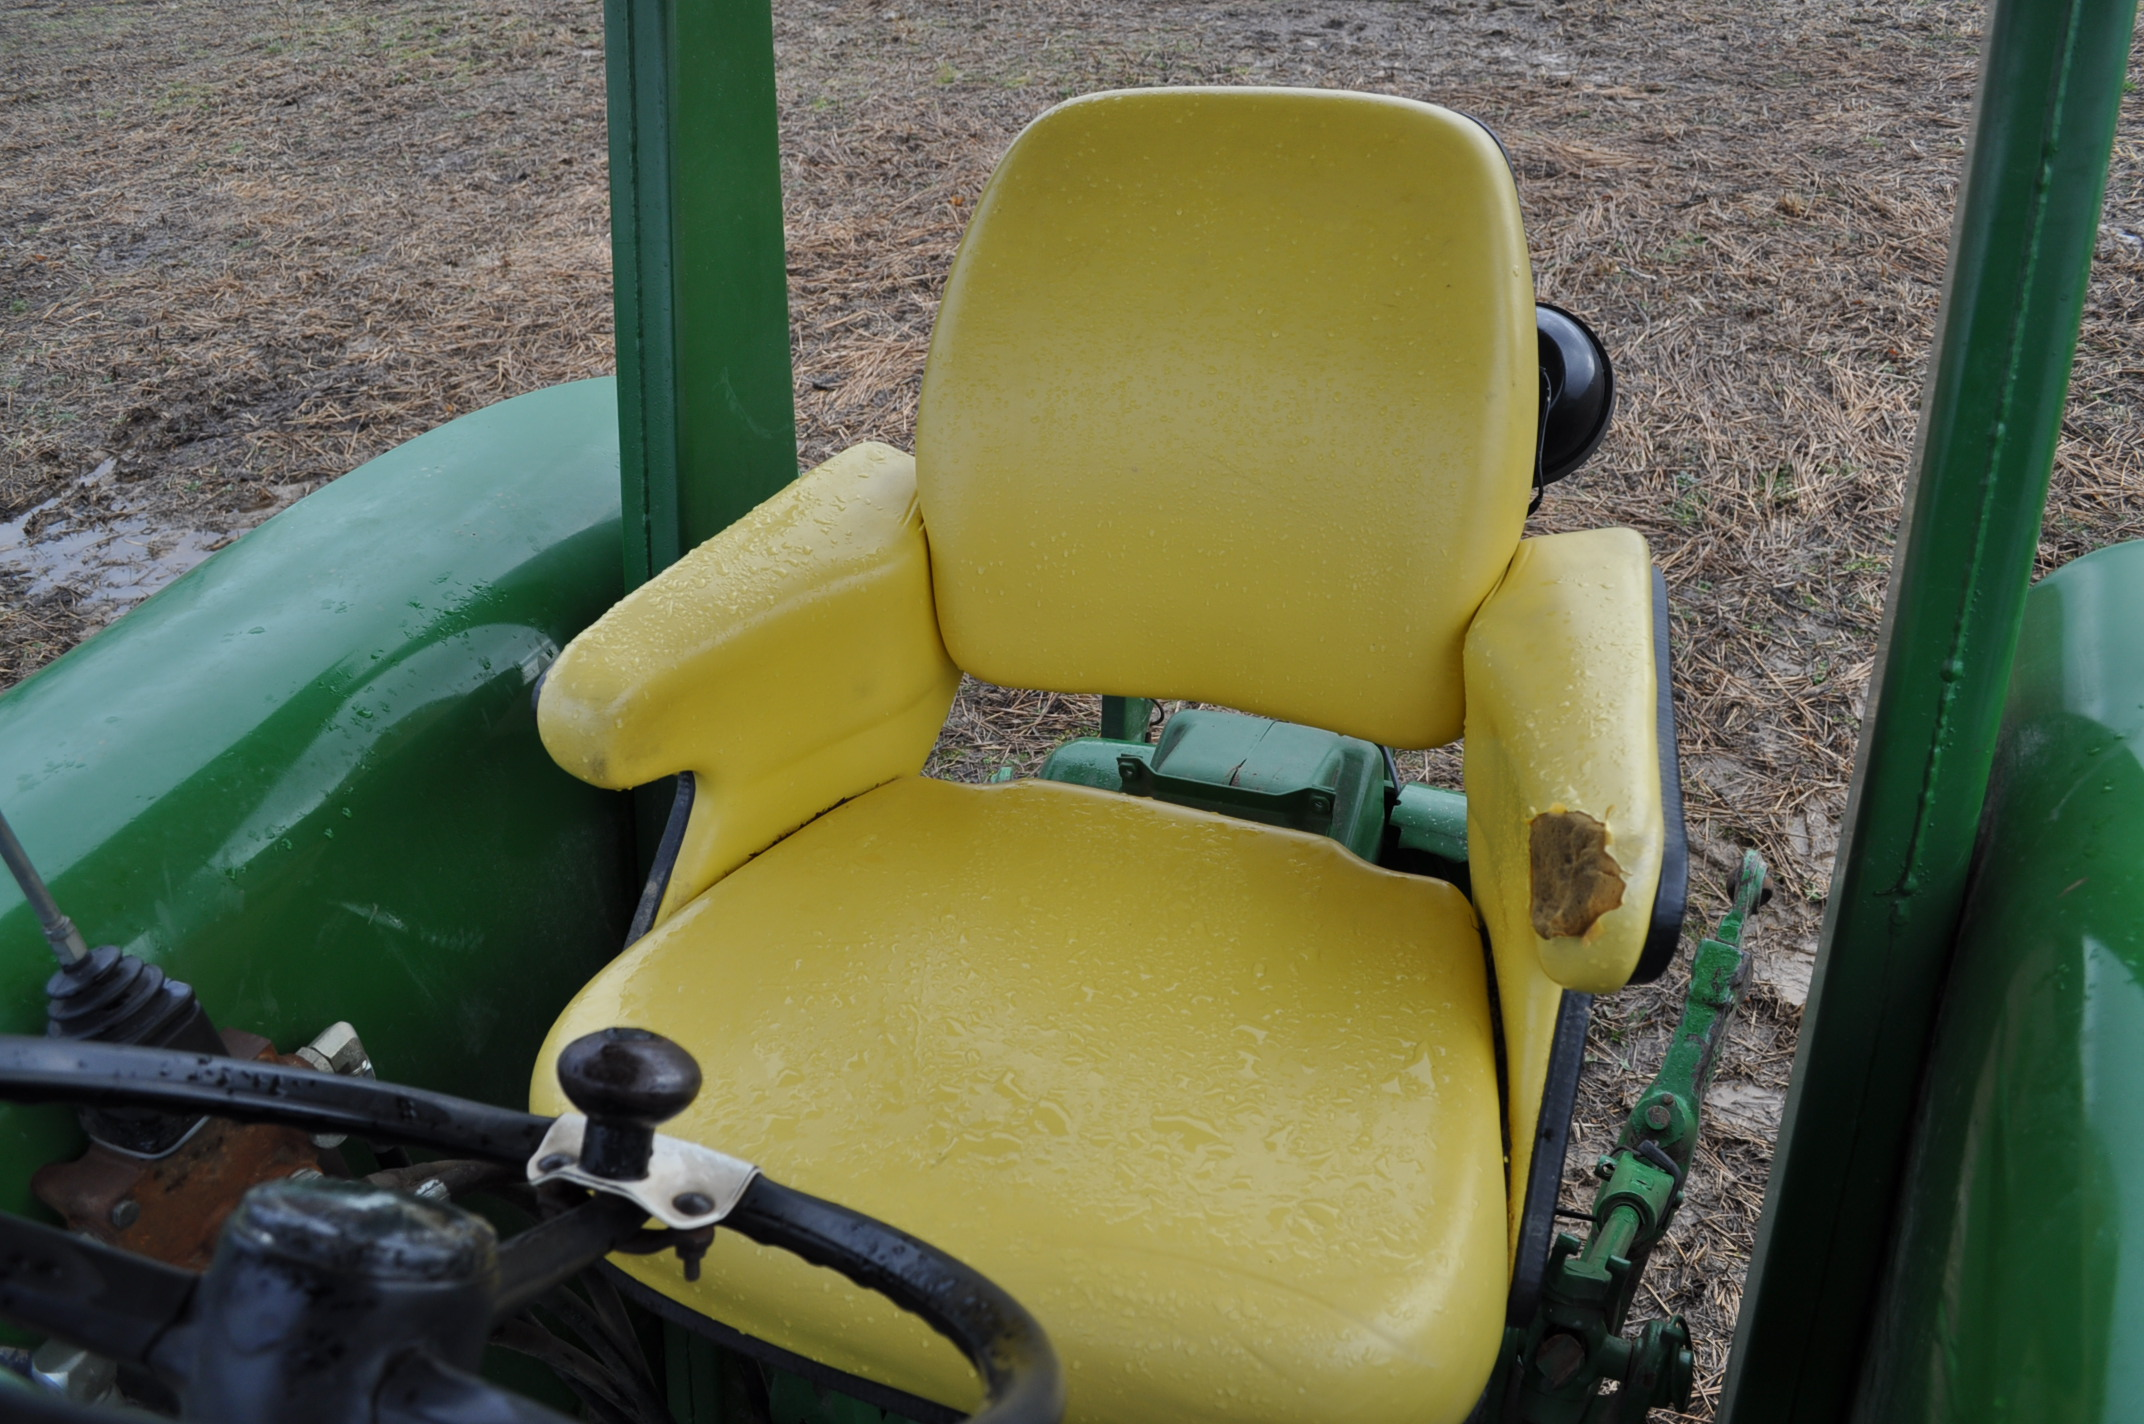 John Deere 4020 tractor, diesel, 18.4-34 tires w/ clamp on dual rims, 11L-15 front, ROPS w/ - Image 17 of 22